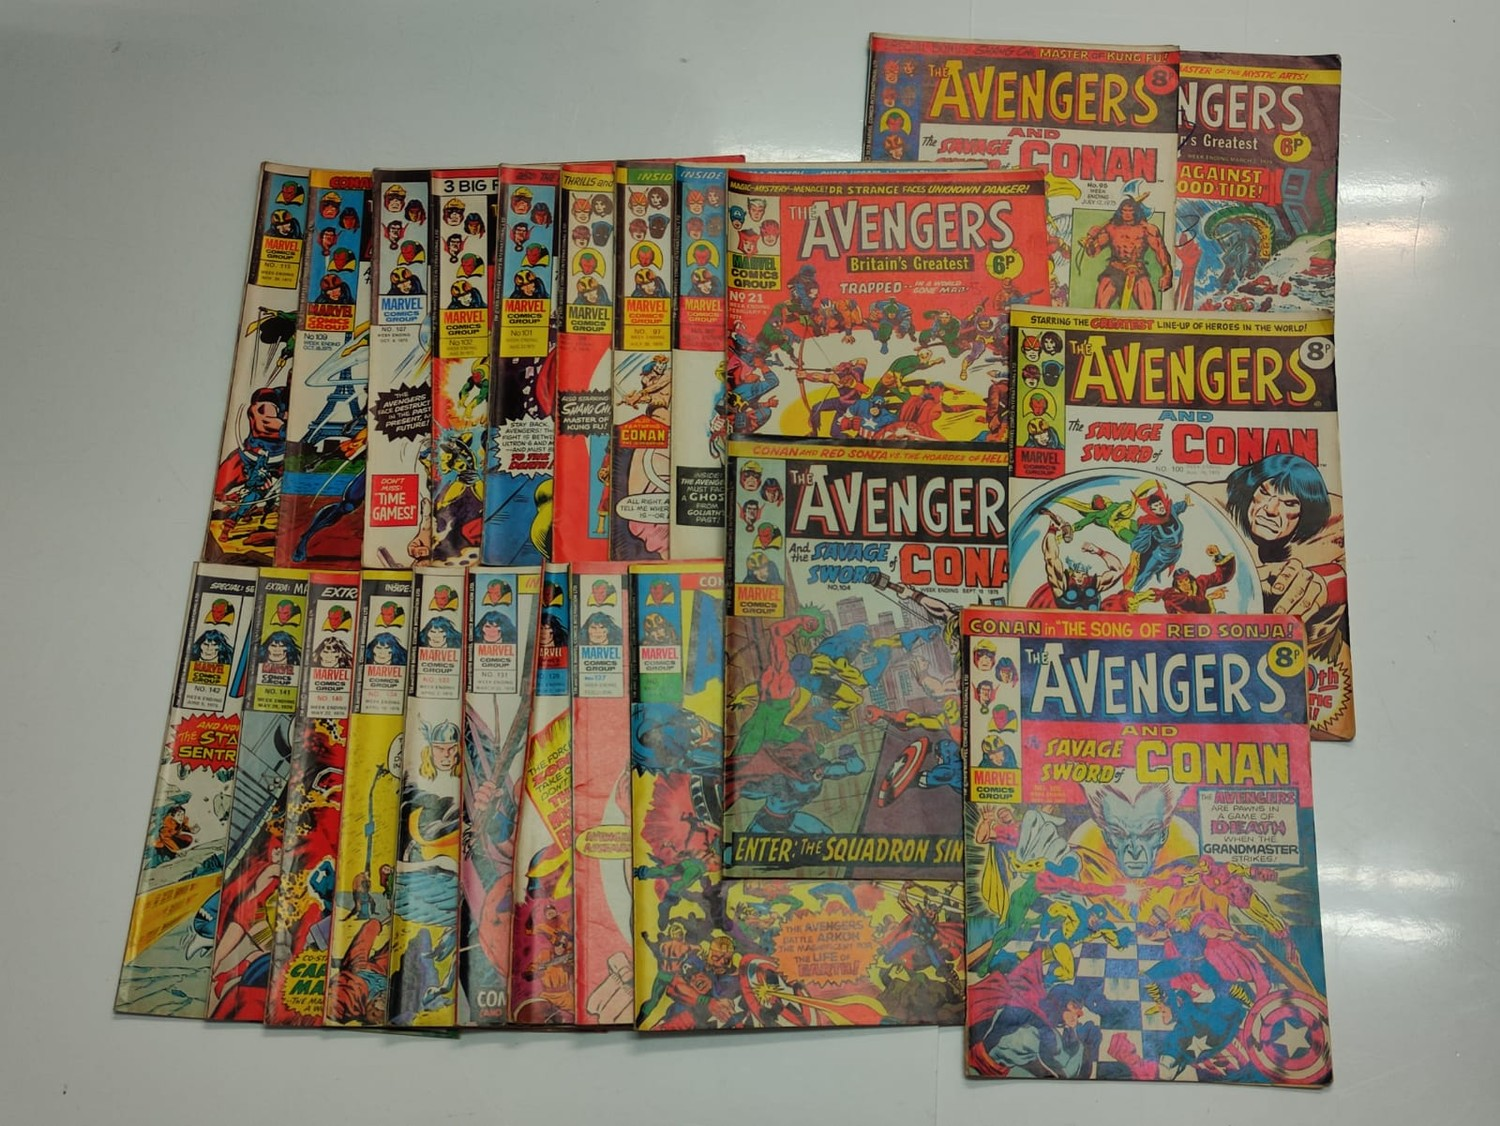 25 x Marvel comics. The Avengers. Dating from 1974-1976